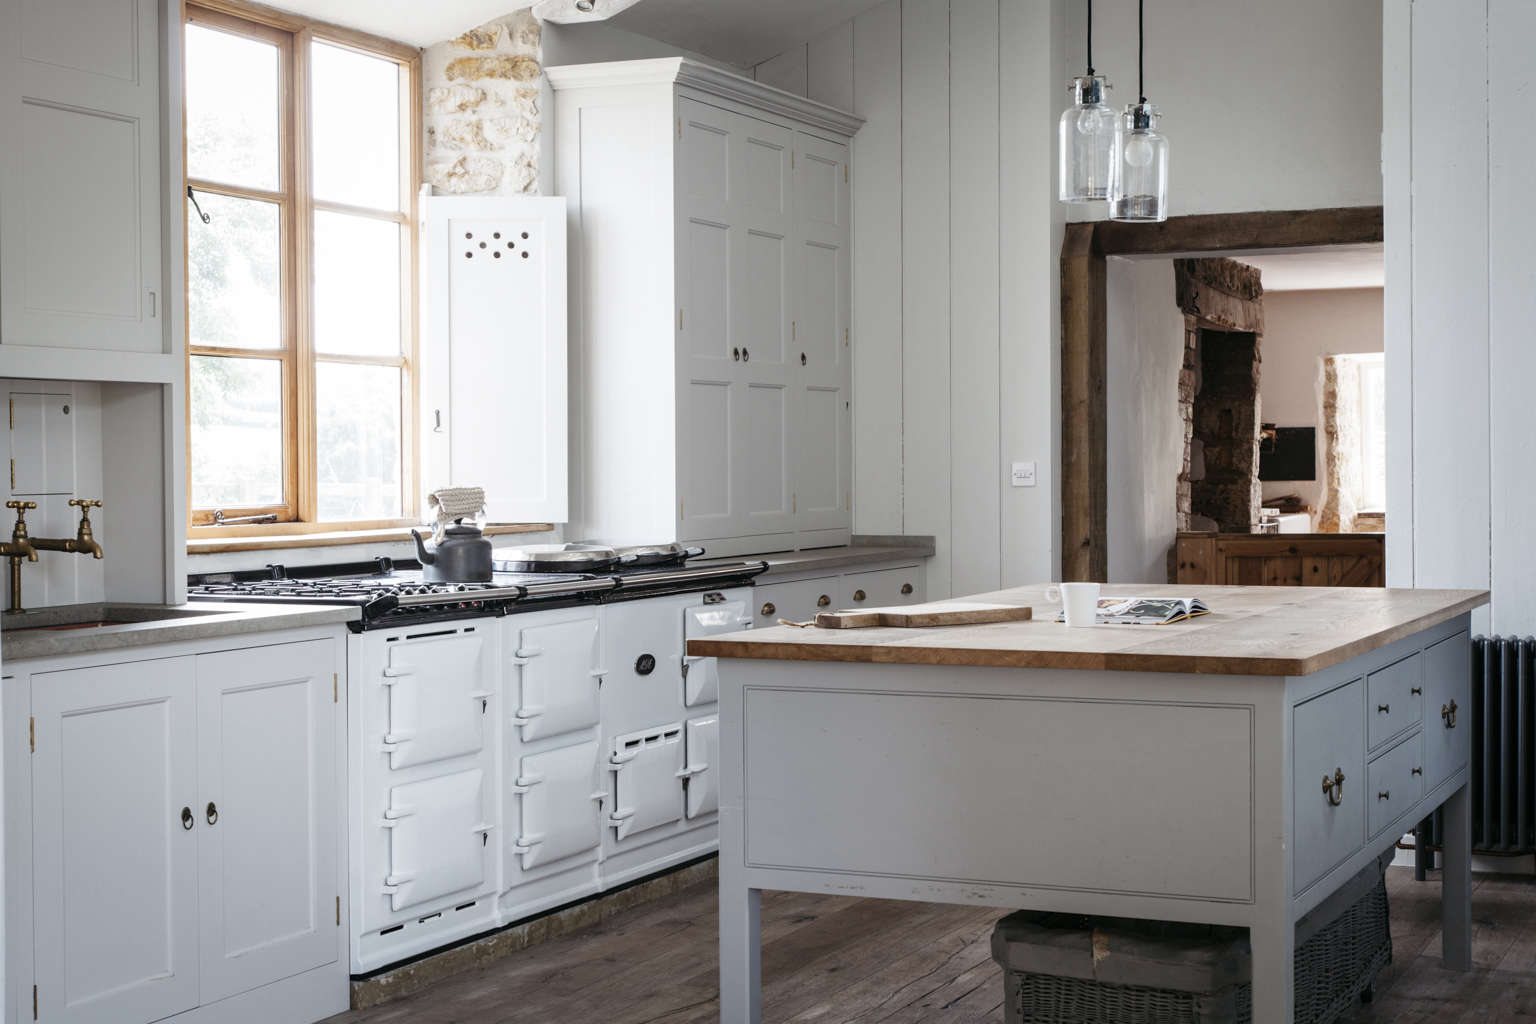 A modern spin on a classic English kitchen in a Dorset farmohuse by Plain English, white Aga included